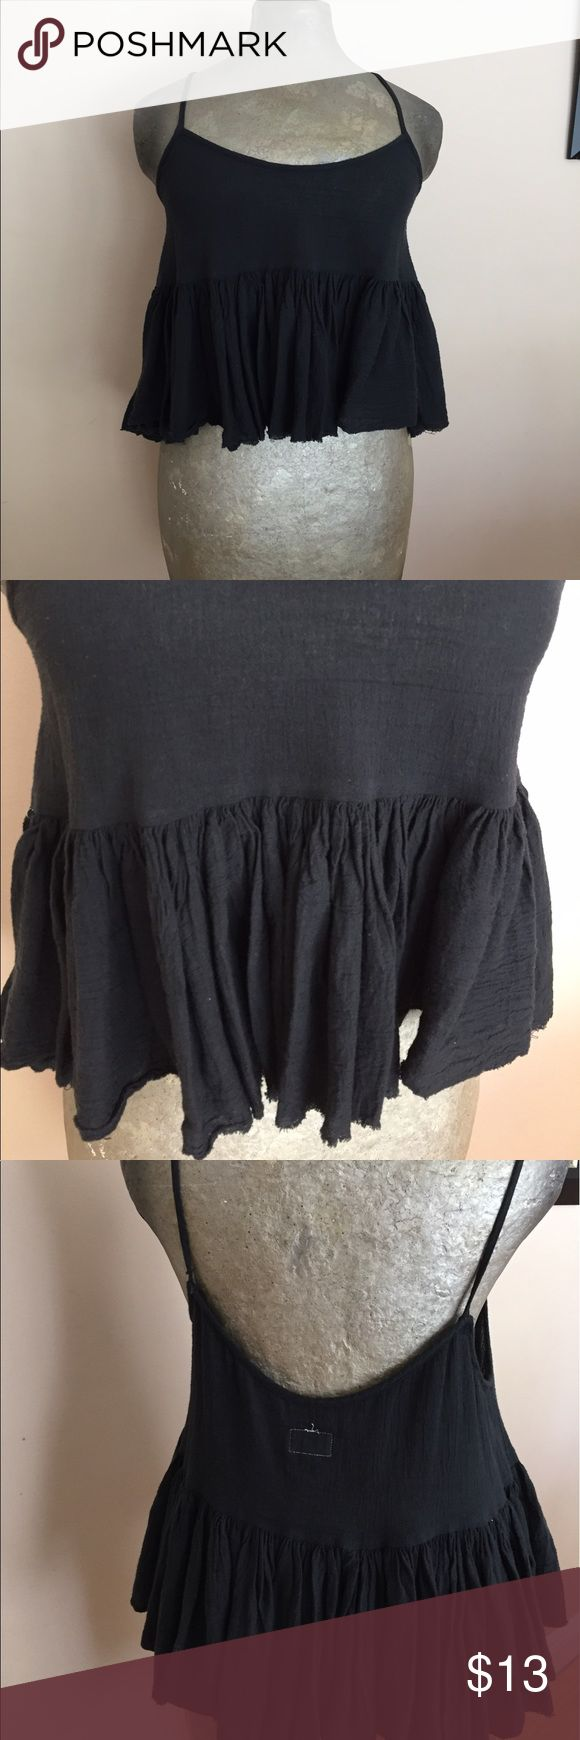 Hipster Crop Top urban outfitters Pre- owned with no major signs of wear. Swing tank top . Ruffles. Loose. Size fits S-M. Please feel free to contact me for more detailed information 🌻 Urban Outfitters Tops Camisoles